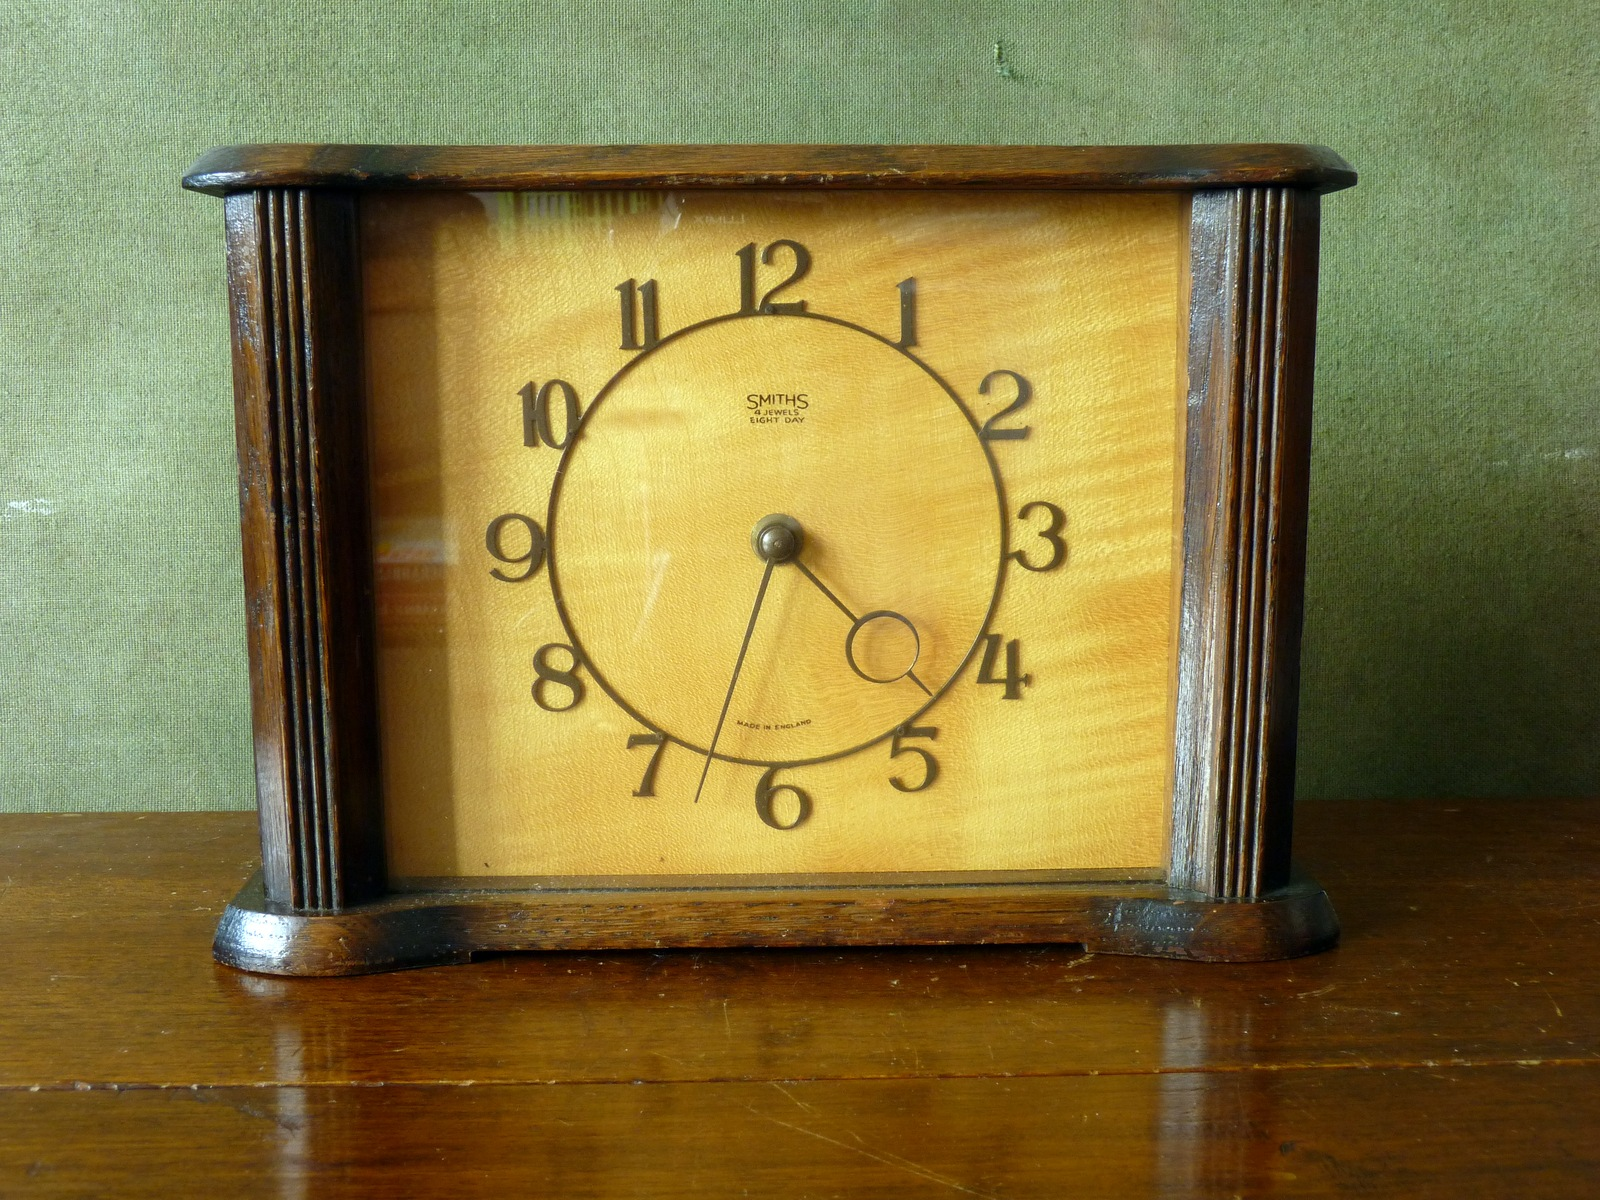 Smiths 4 Jewels Eight Day Mantel Clock